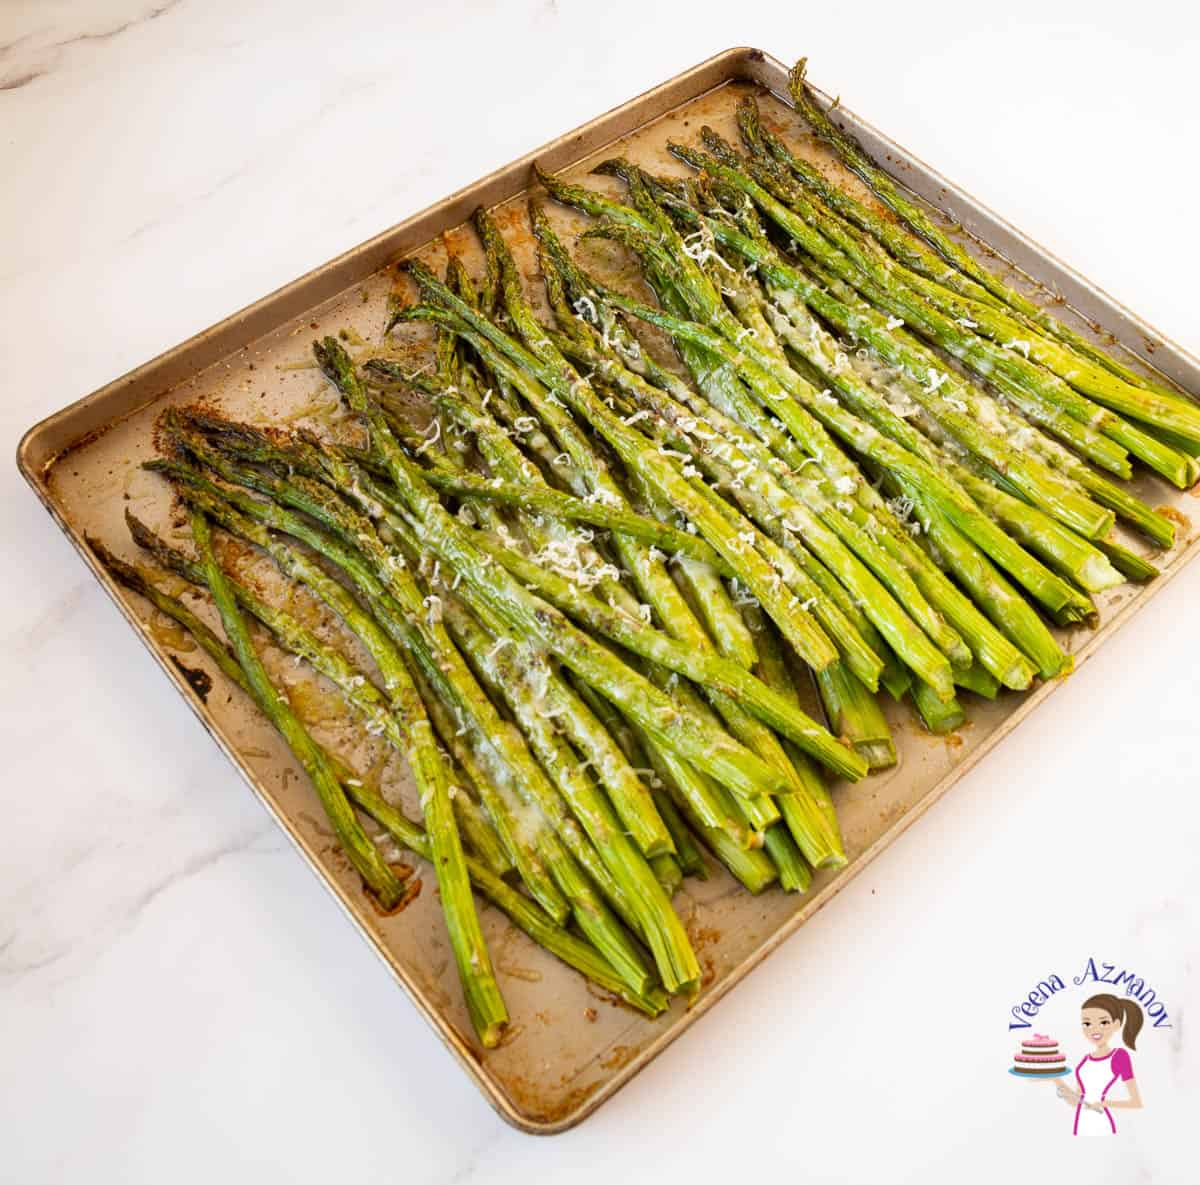 baked asparagus on a baking tray